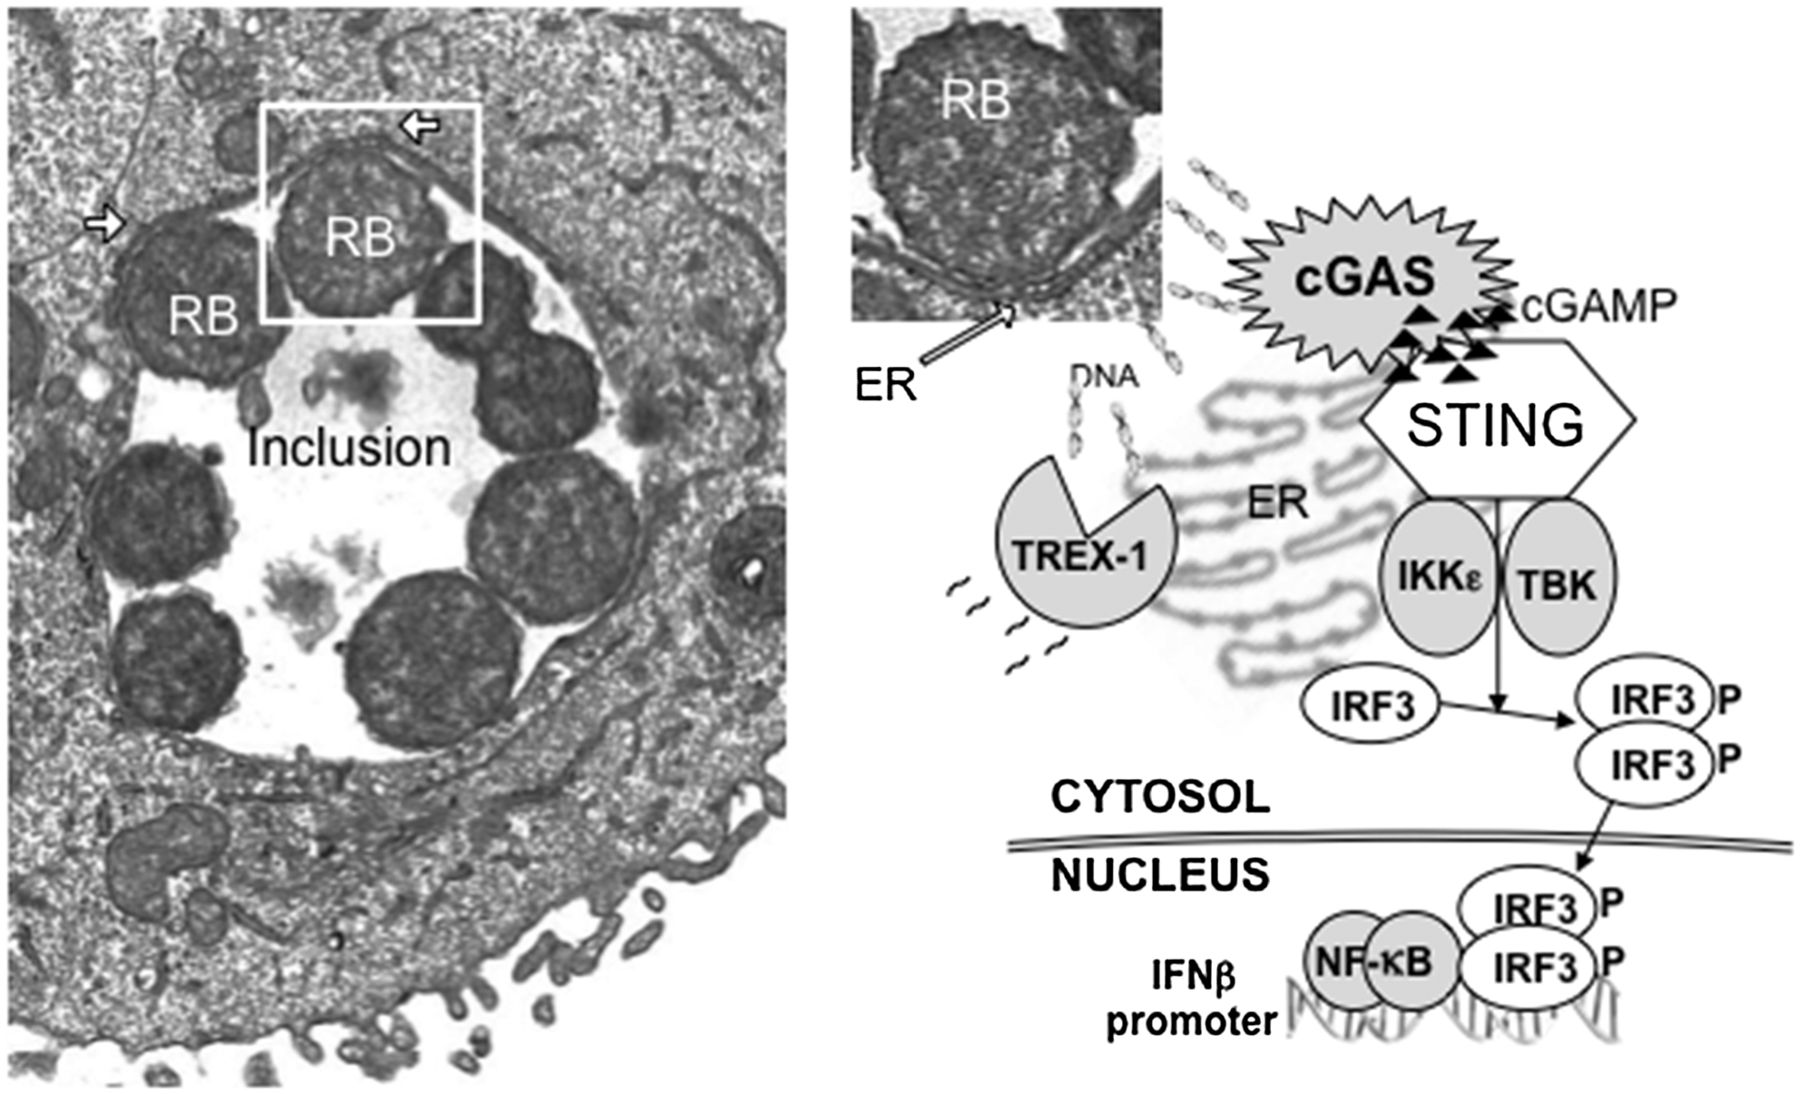 the dna sensor, cyclic gmp–amp synthase, is essential for induction